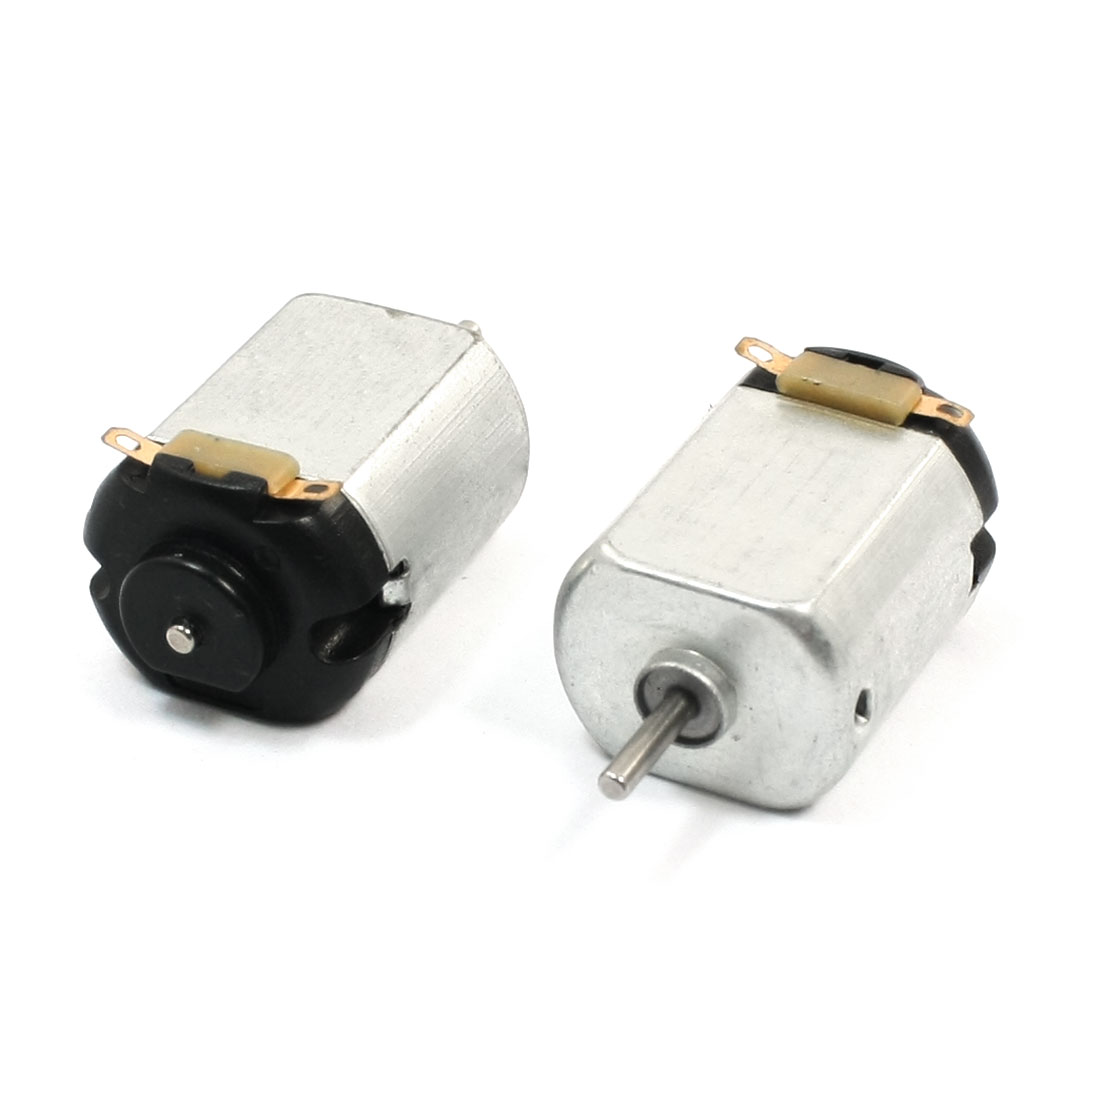 RC Airplane 2 Pin Electric Magnetic Mini Motor 19000RPM DC 3-6V 2pcs